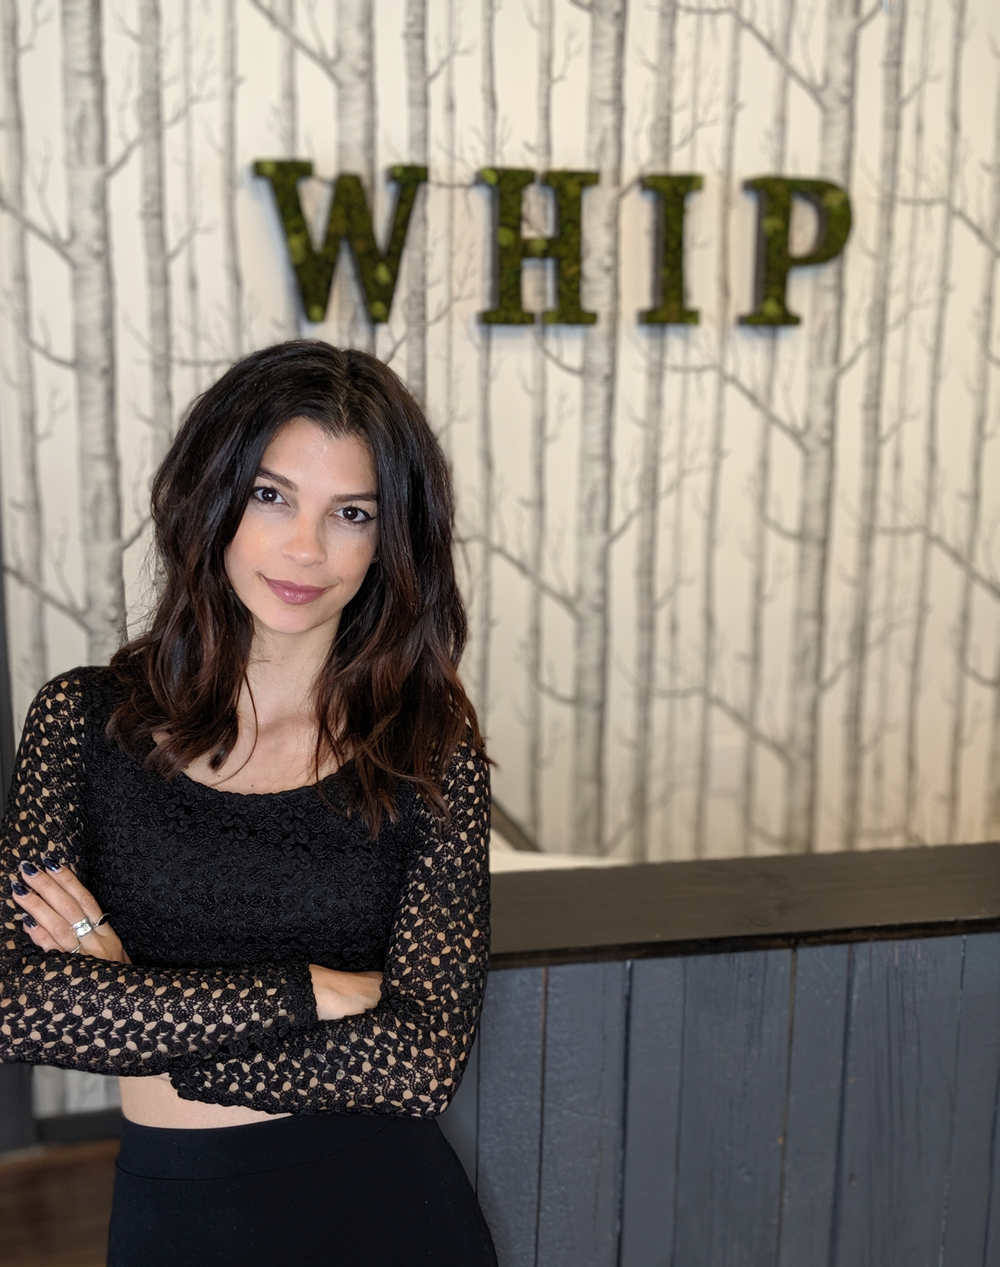 <p>Marcelle Tiffany is the first franchisee owner at Whip Salon.&nbsp;</p>